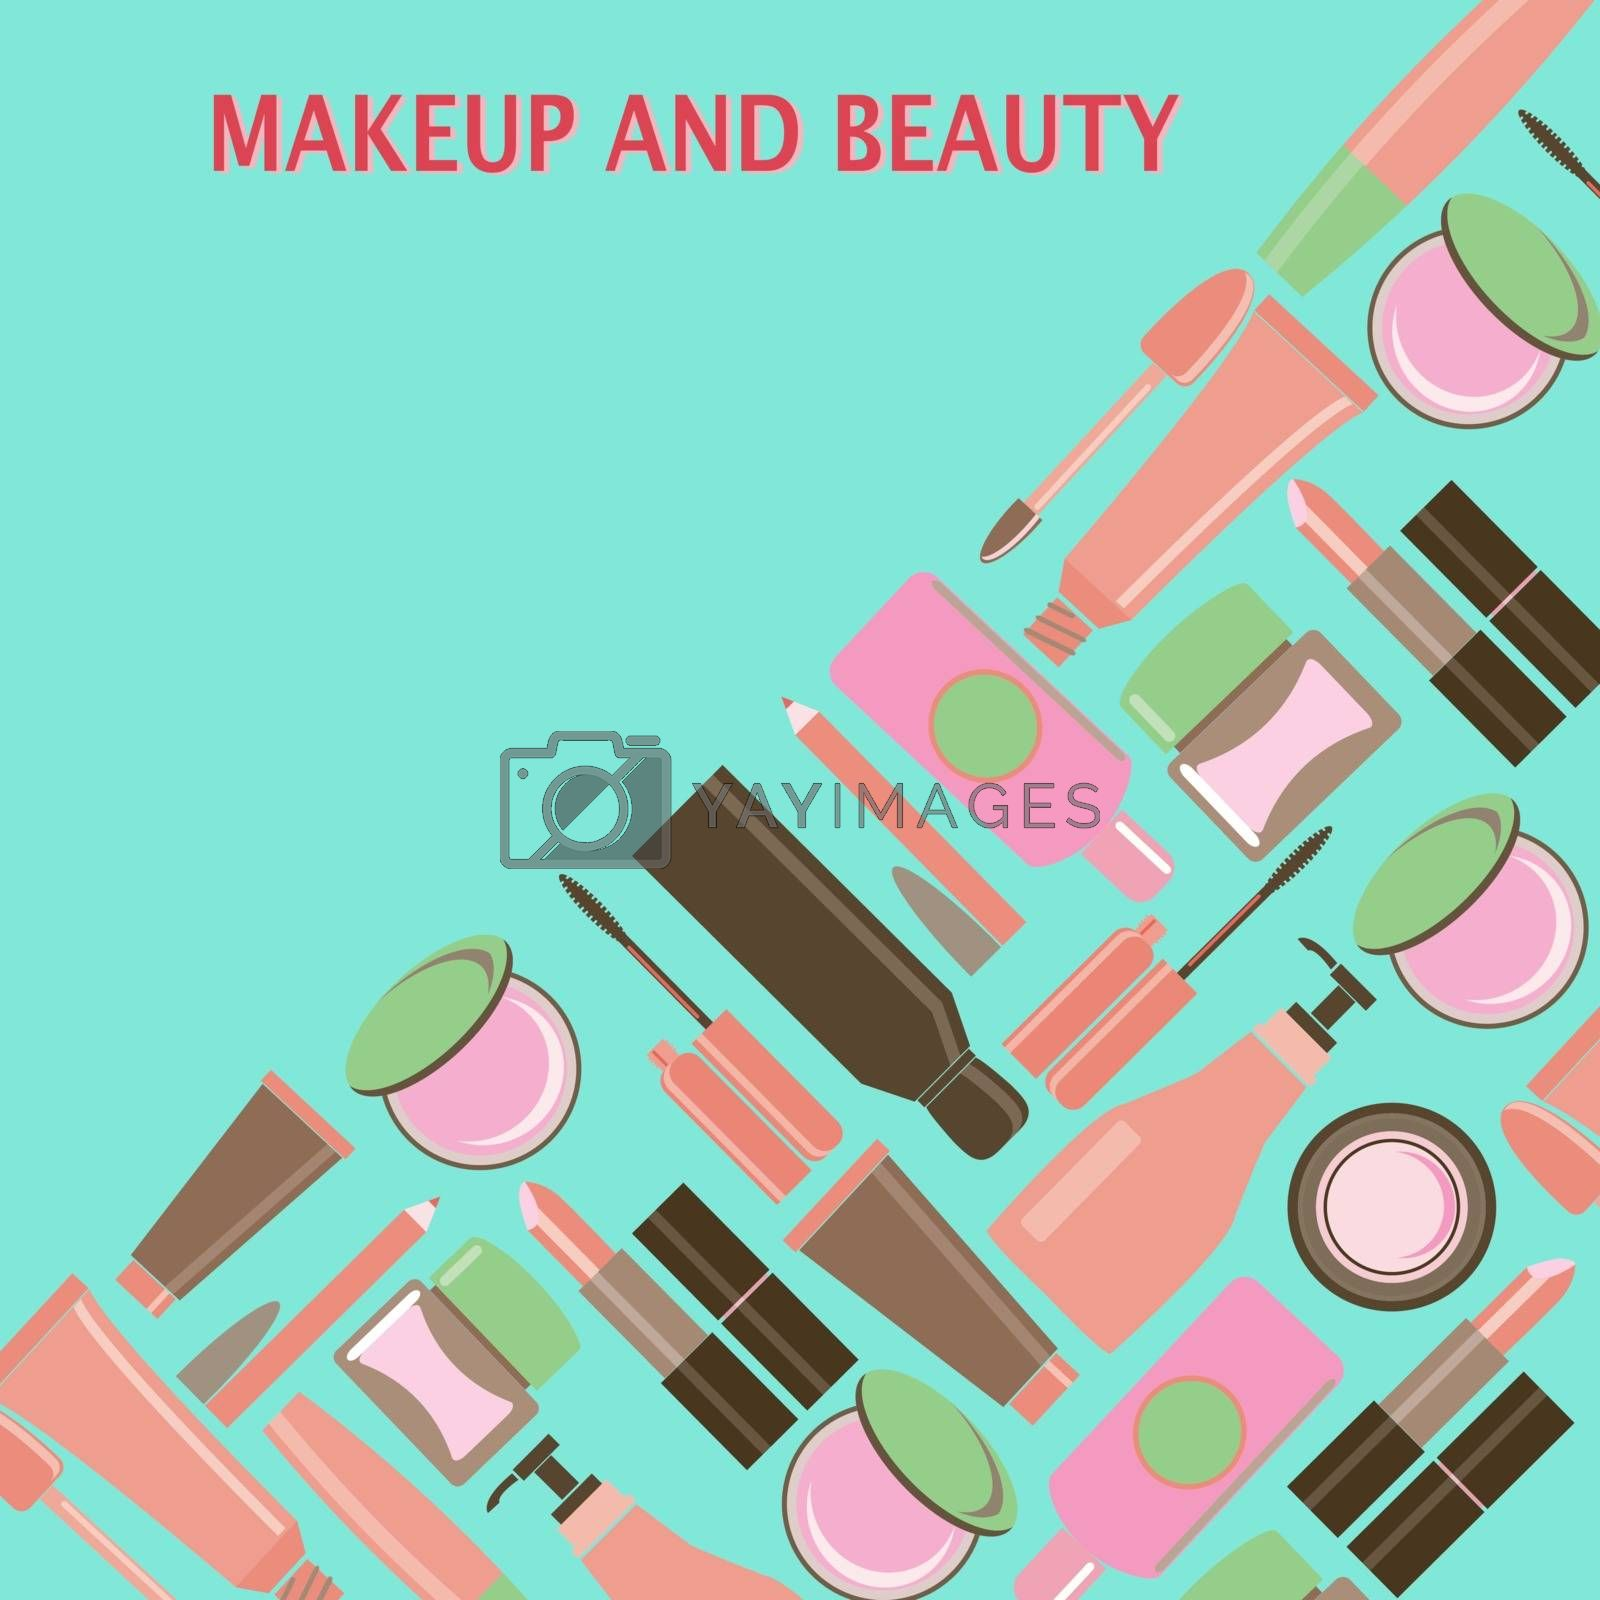 MakeUp and beauty Symbols, Cosmetics and fashion background with objects: lipstick, cream, brush and place for your text. Beauty store background